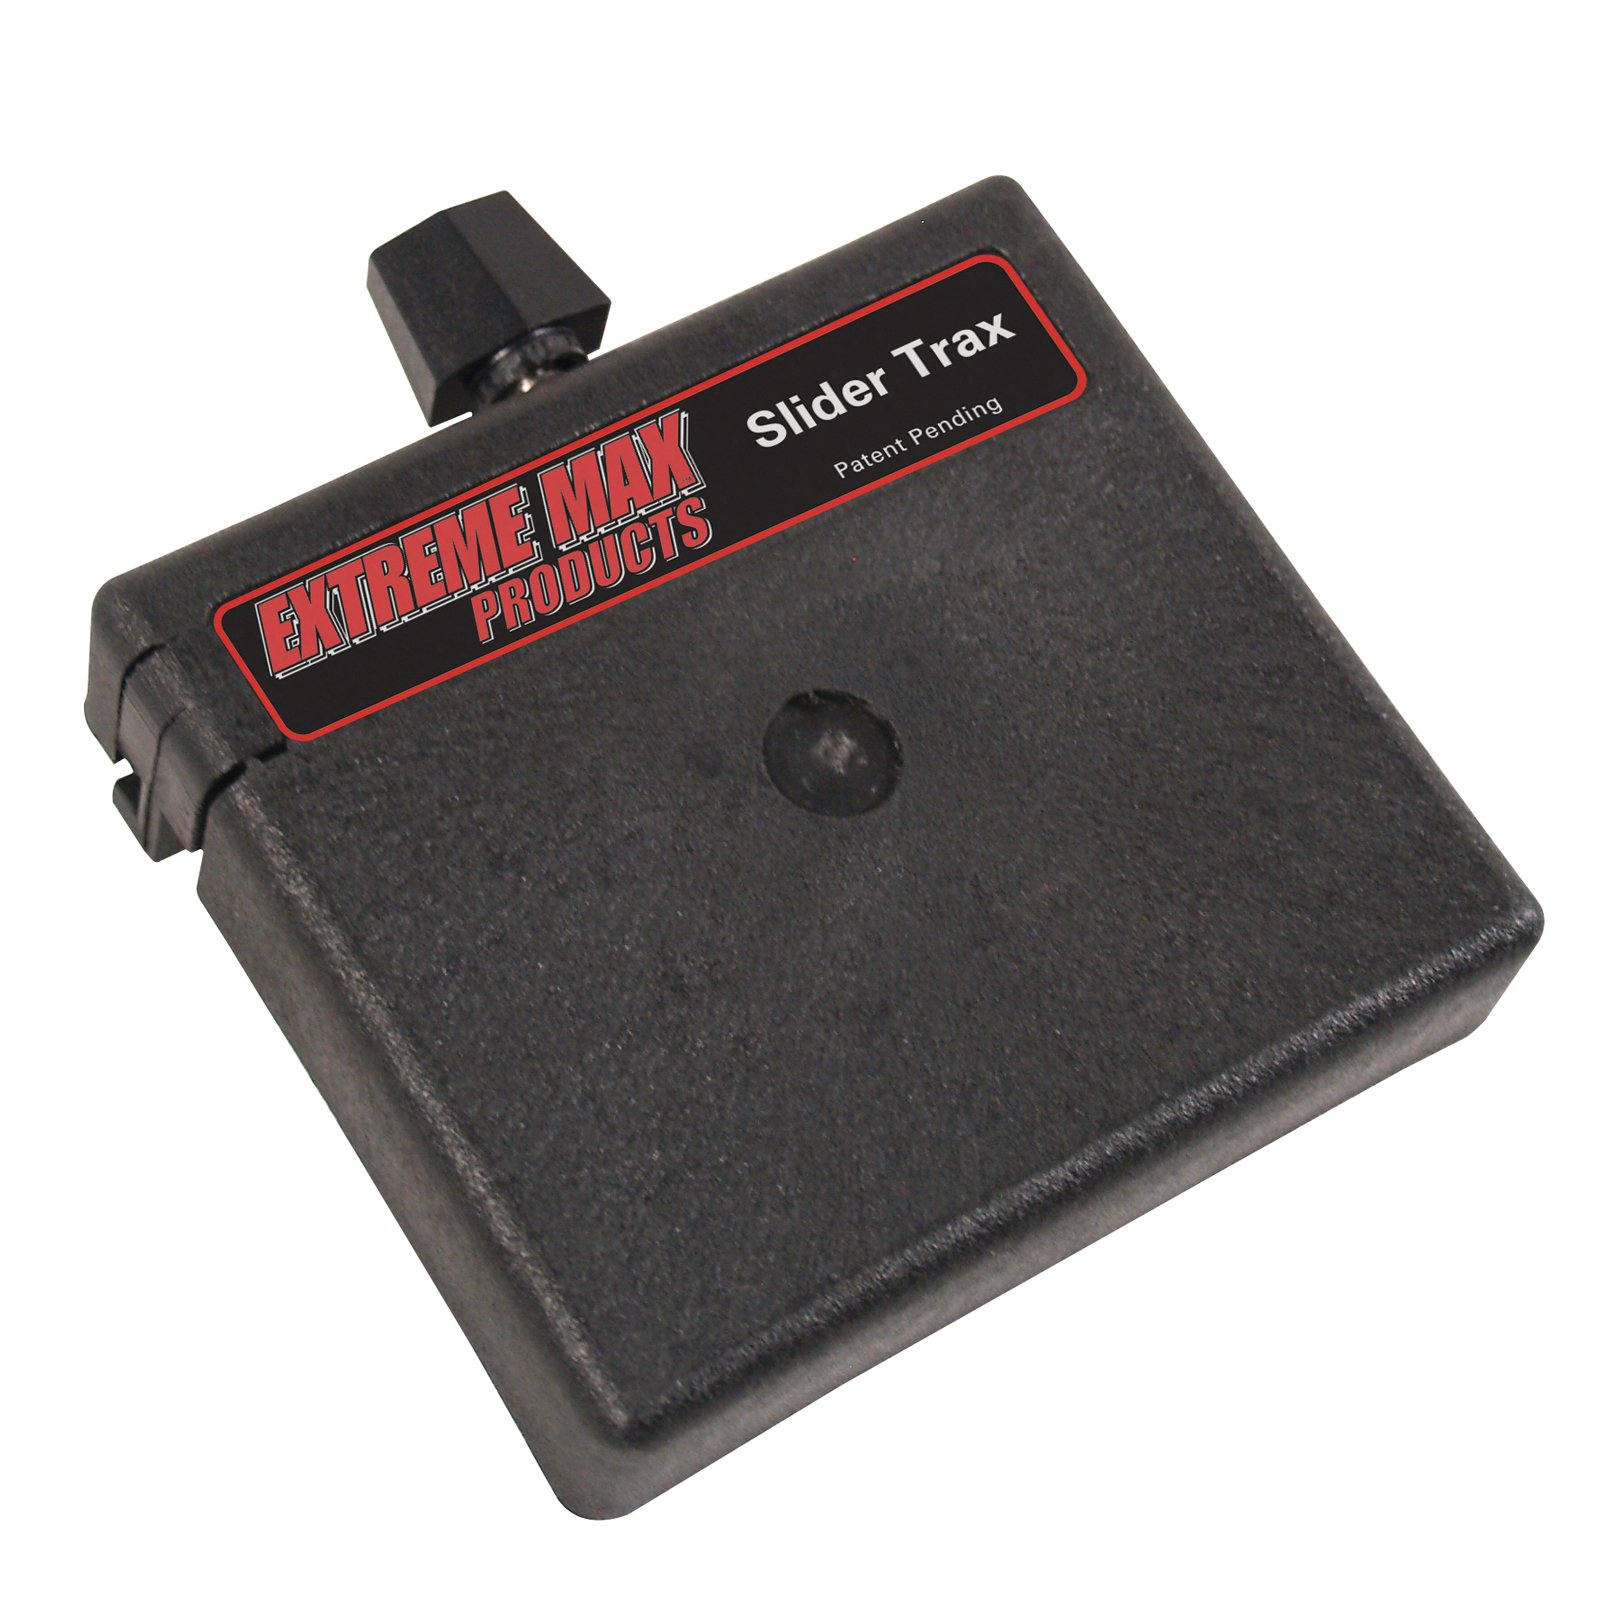 Extreme Max 3004.3096 Straight Base for Slider Trax / OEM Marine Accessory Mounting Systems, Each